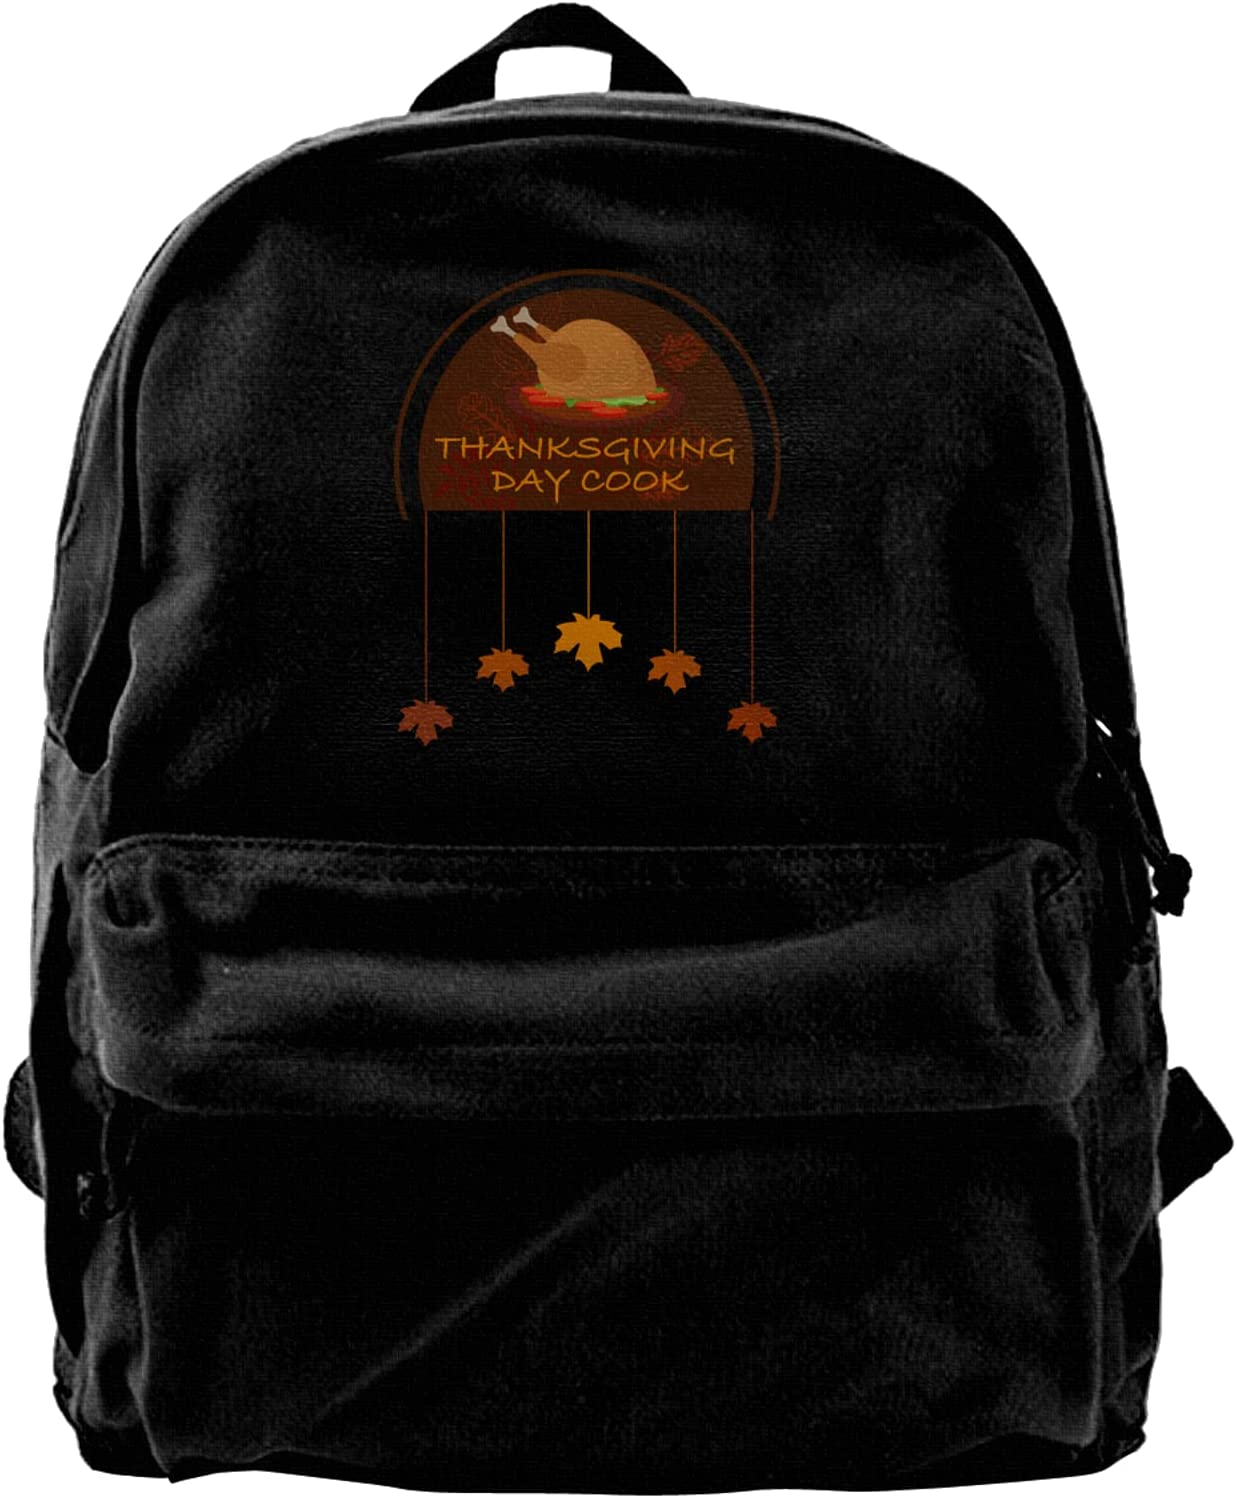 Thanks Giving Industry No. 1 Day Cook Recommended Canvas High-Capacit Bags Backpacks Laptop